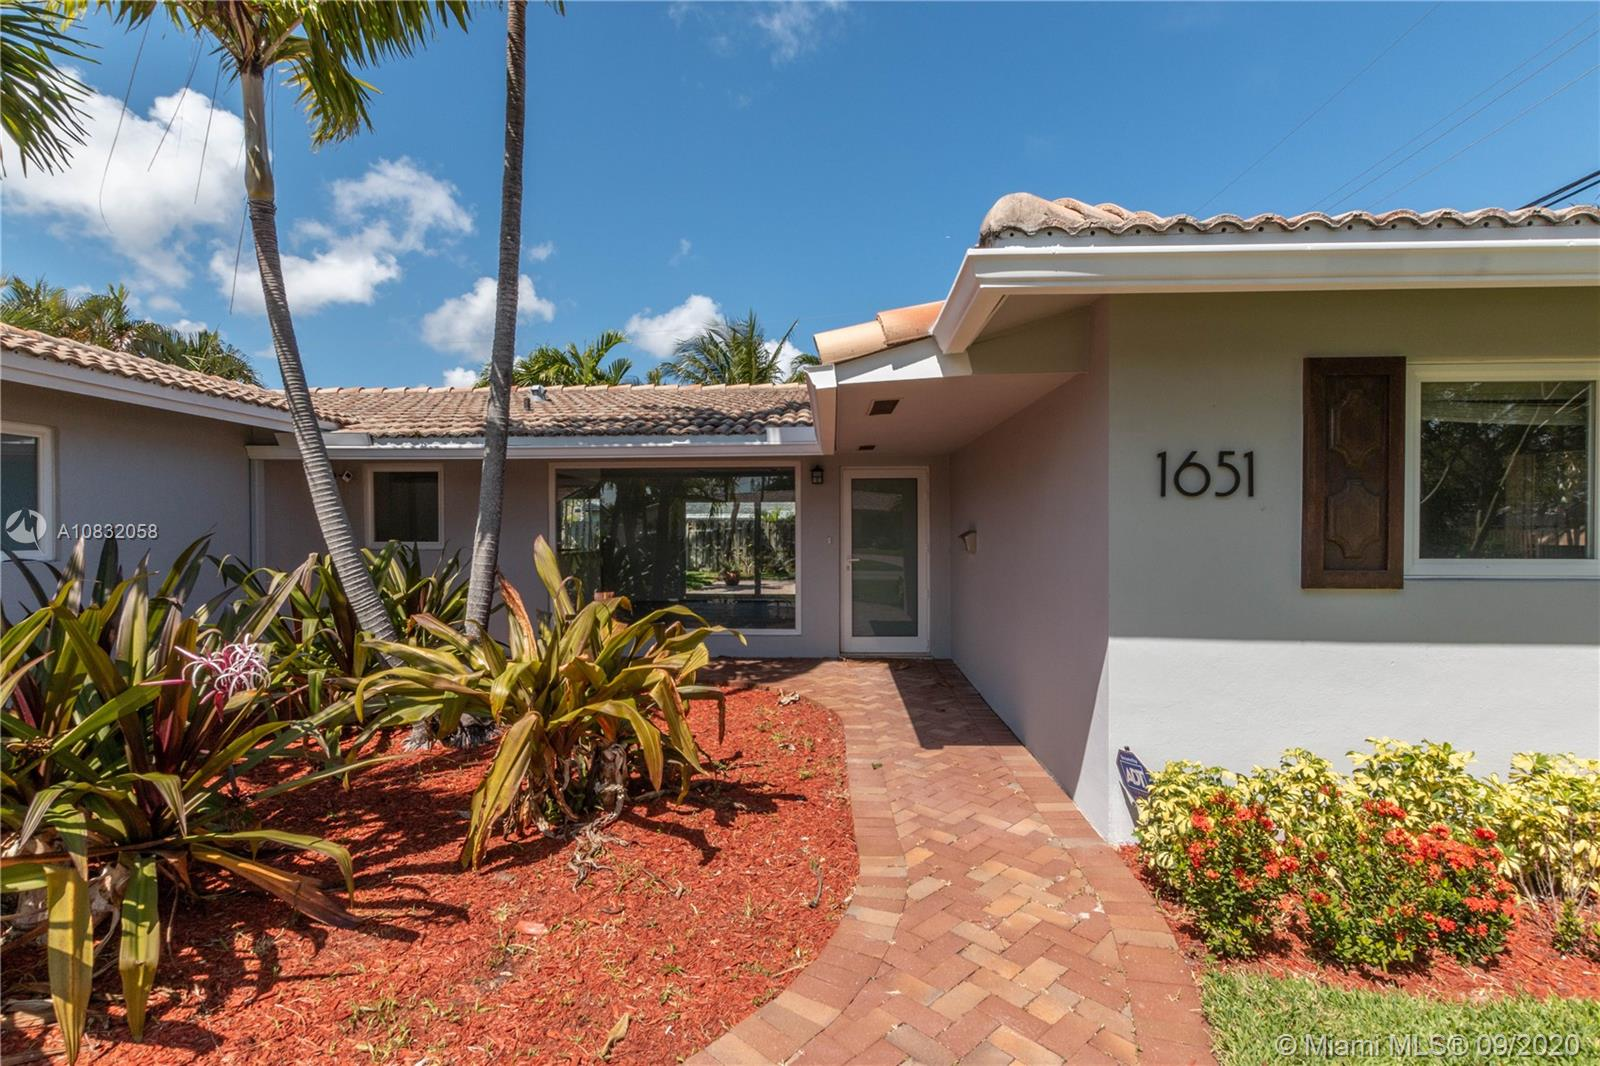 Beautiful 3 bed/ 2 bath Coral Ridge Isles home! This completely remodeled, open floor plan home features impact windows and doors, built-in closets, updated bathrooms, large back yard and two car garage. Rented until 6/14/2020 for $3,000 / Month.